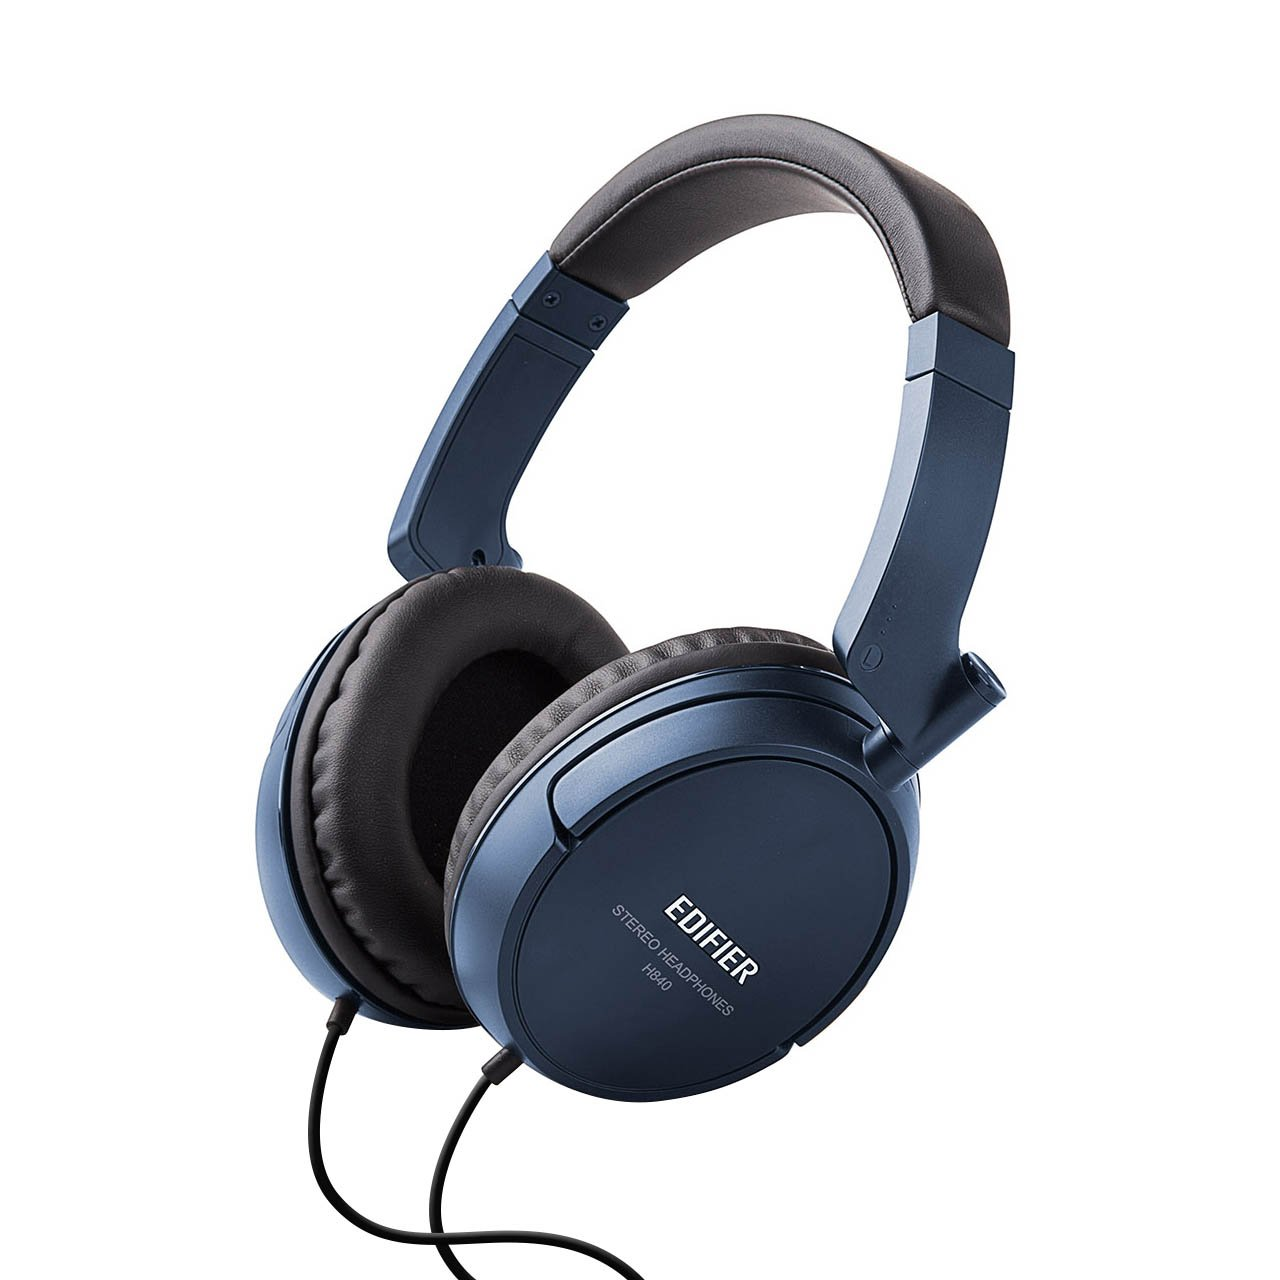 Edifier H840 Audiophile Over-the-ear Headphones - Hi-Fi Over-Ear Noise-Isolating Closed Monitor Music Listening Stereo Headphone - Blue by Edifier